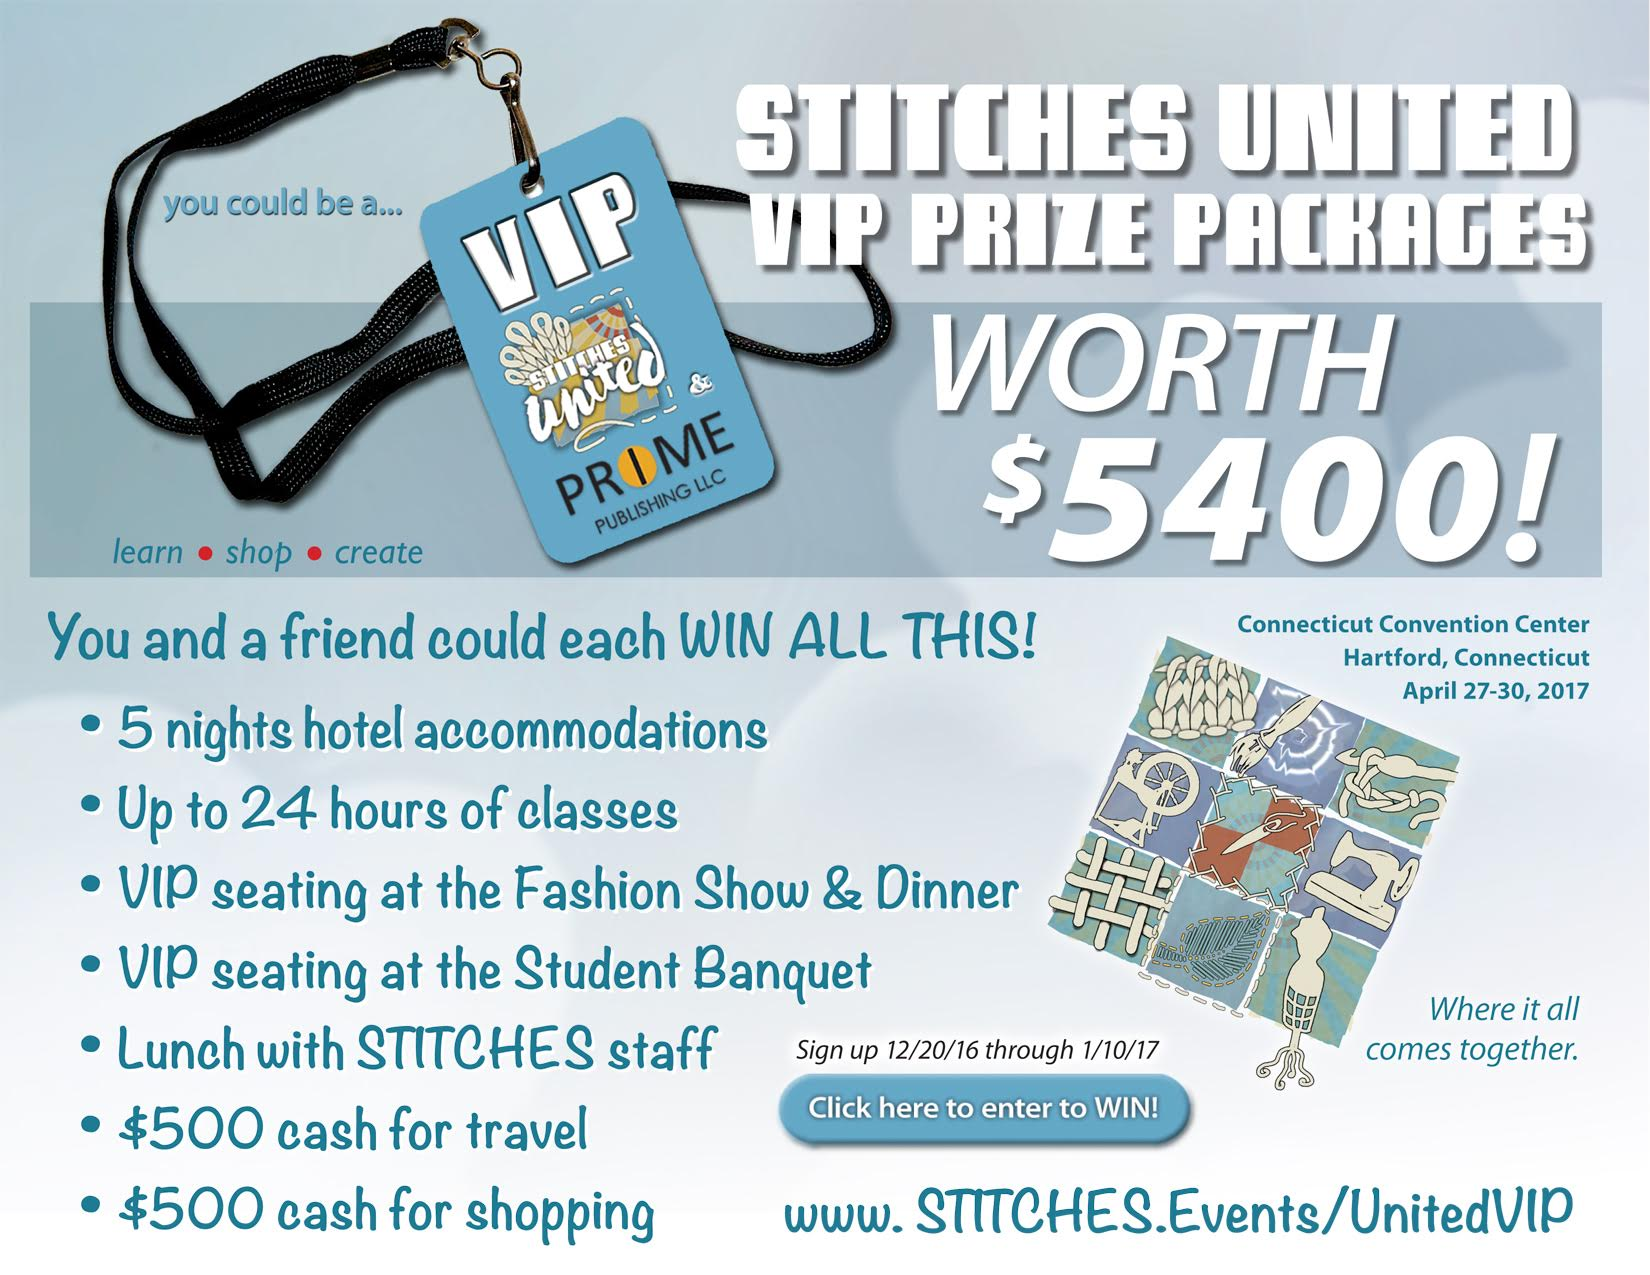 STITCHES United VIP Experience Giveaway